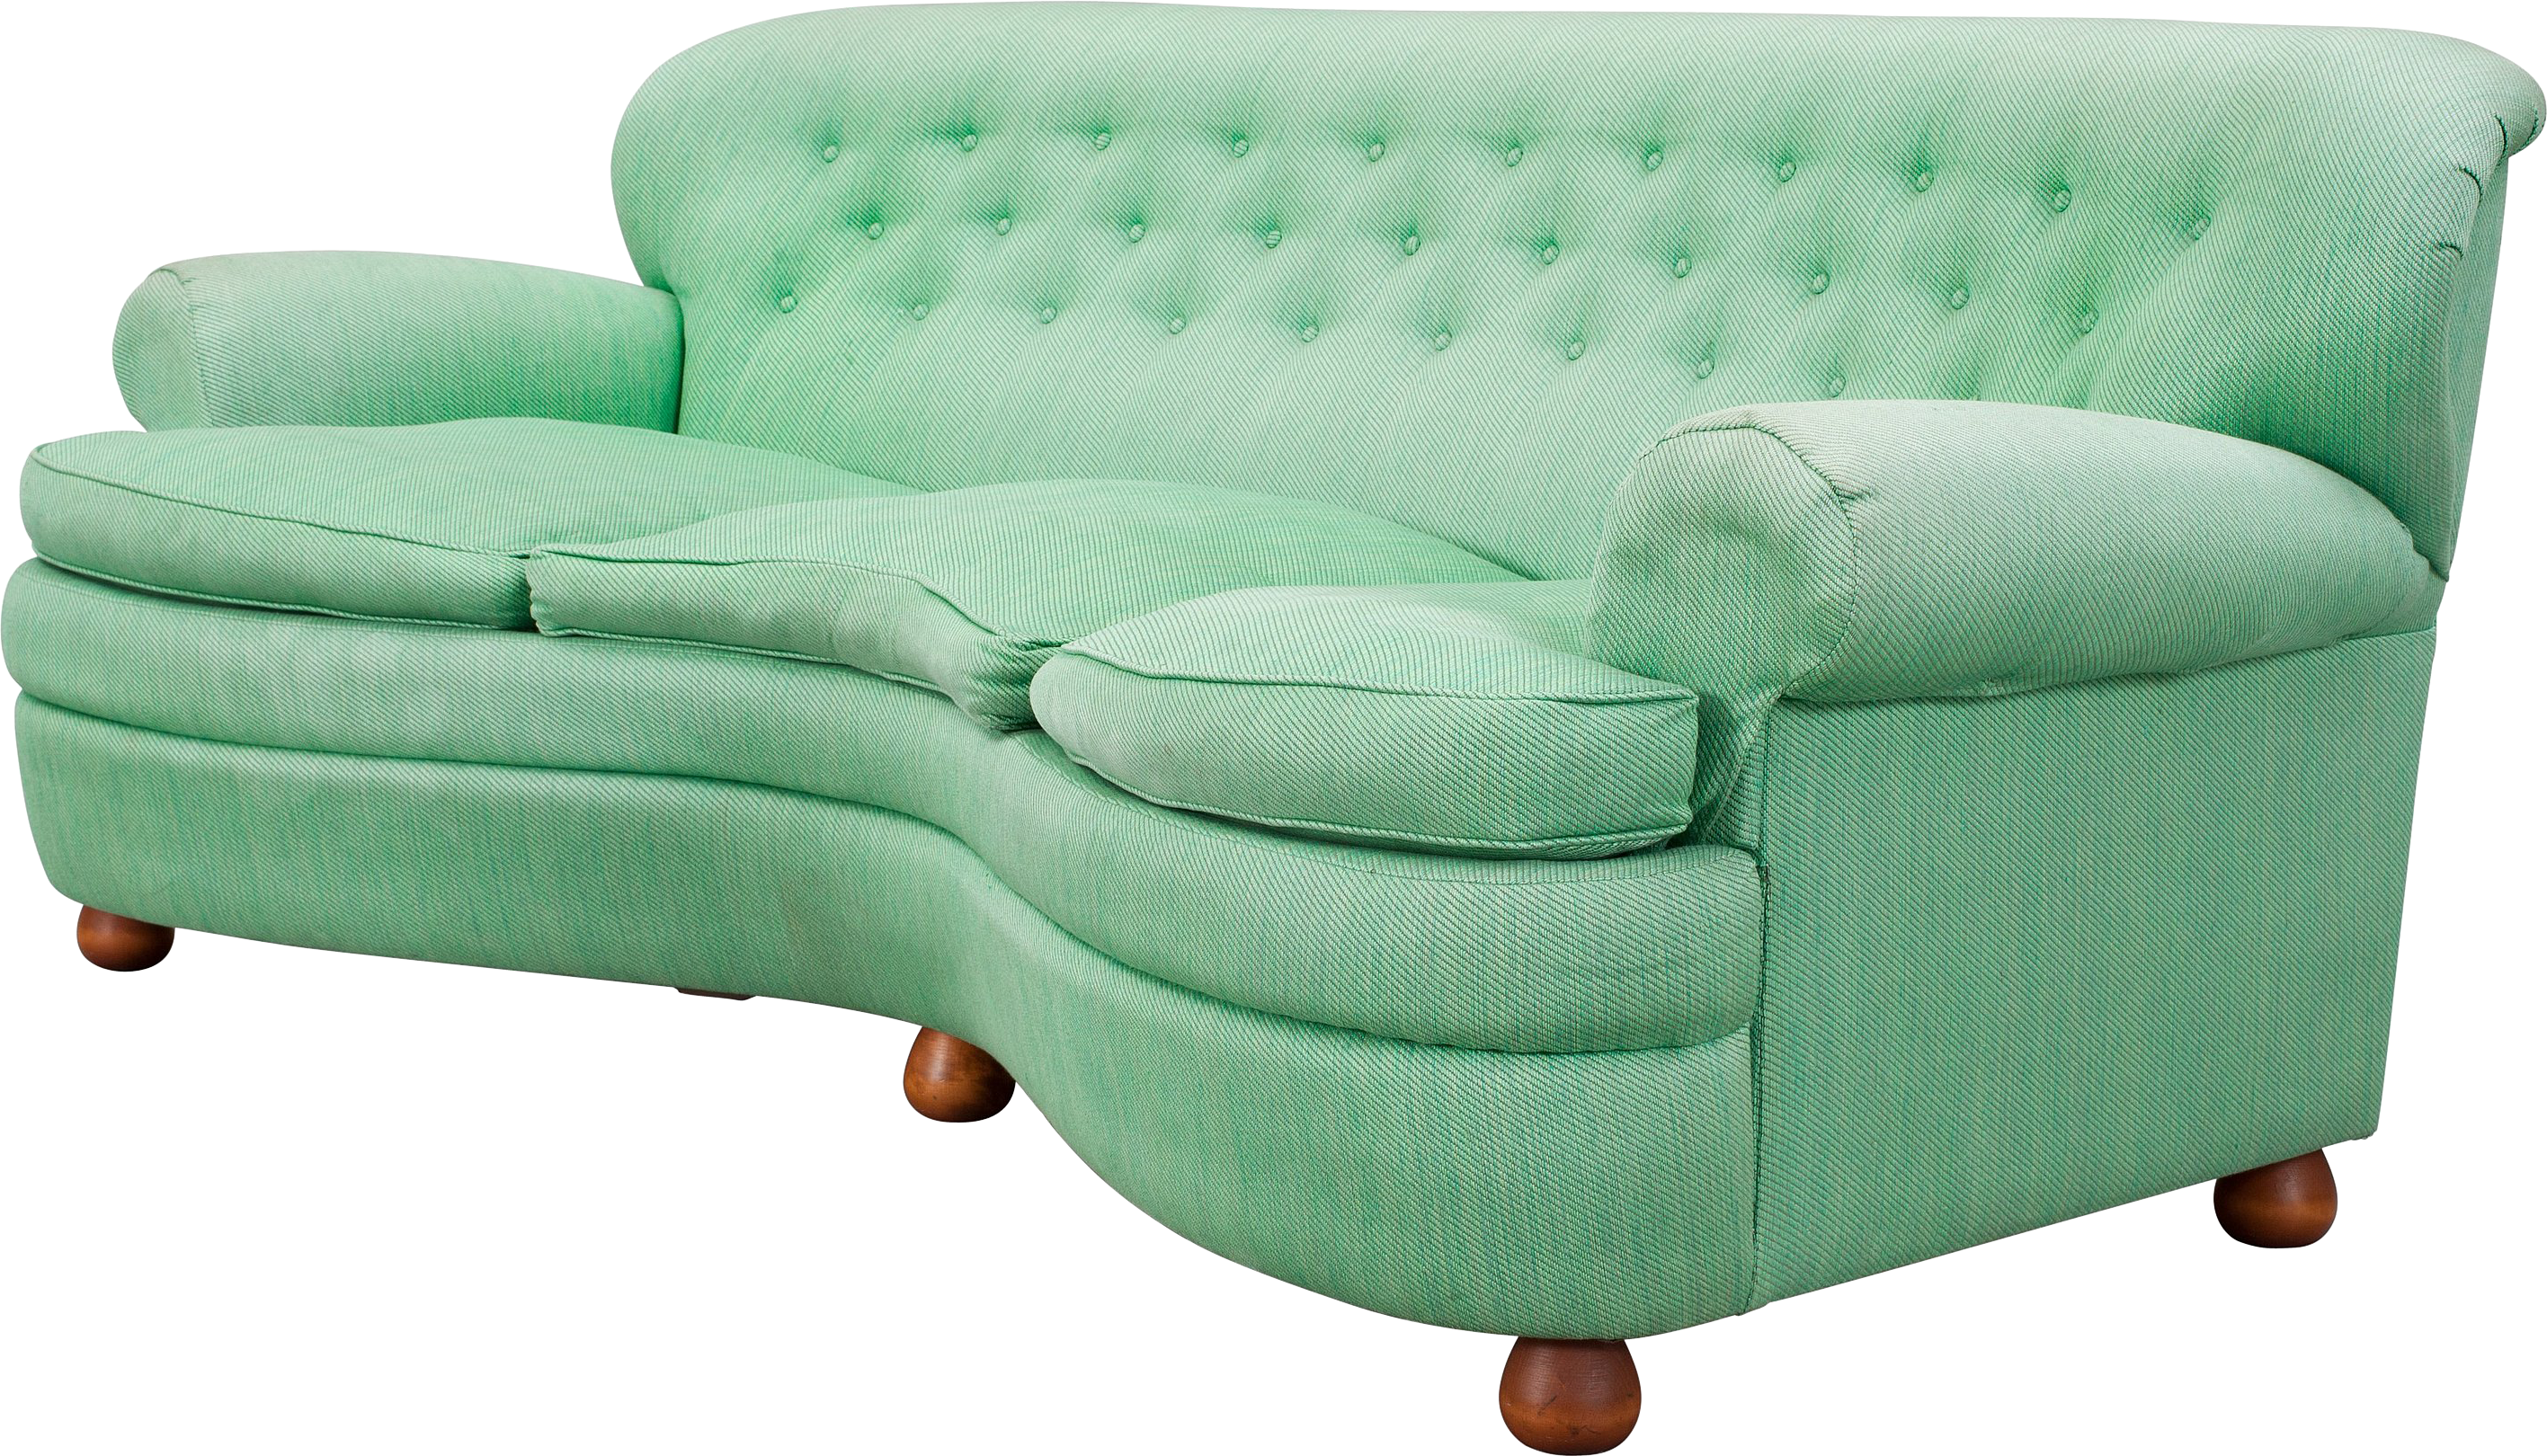 Couch top view png. Sofa images free download